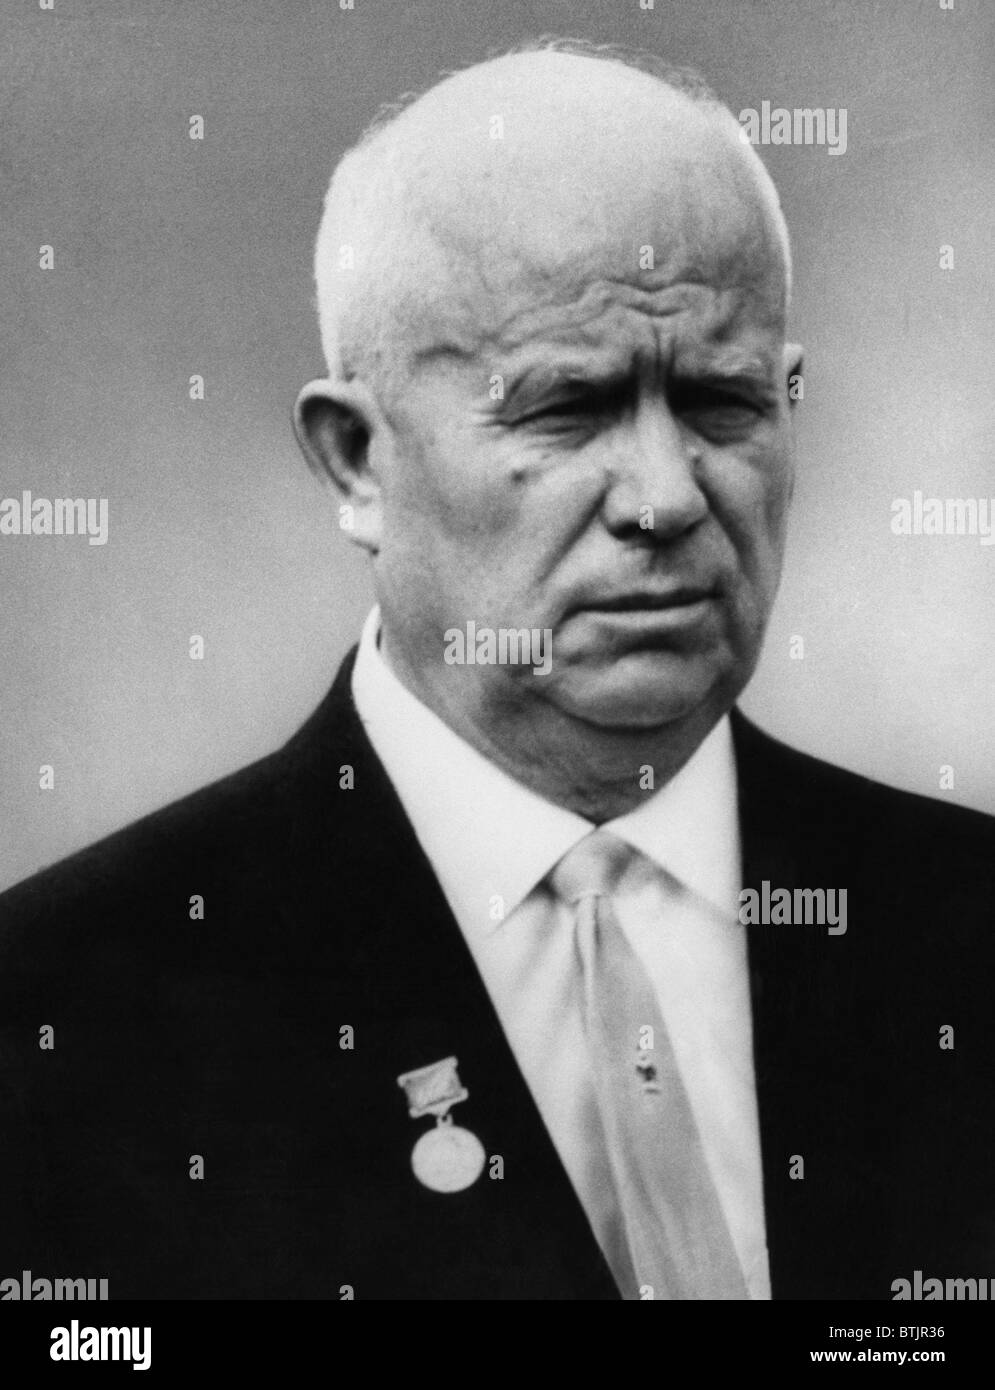 Nikita Khrushchev, (1894-1971), leader of the Soviet Union after the death of Stalin, c. 1950's. - Stock Image